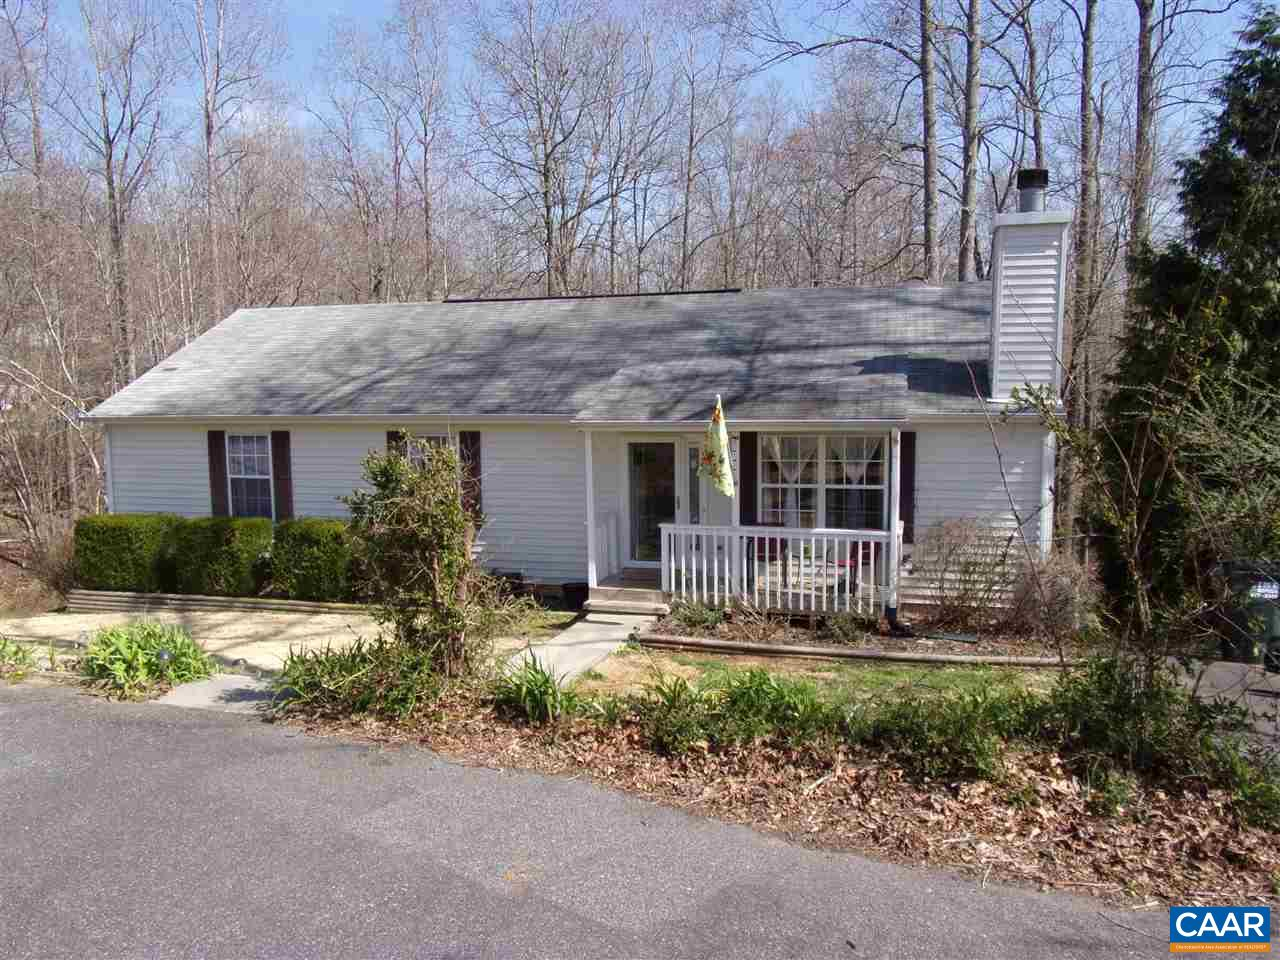 home for sale , MLS #574896, 455 Jonquil Rd